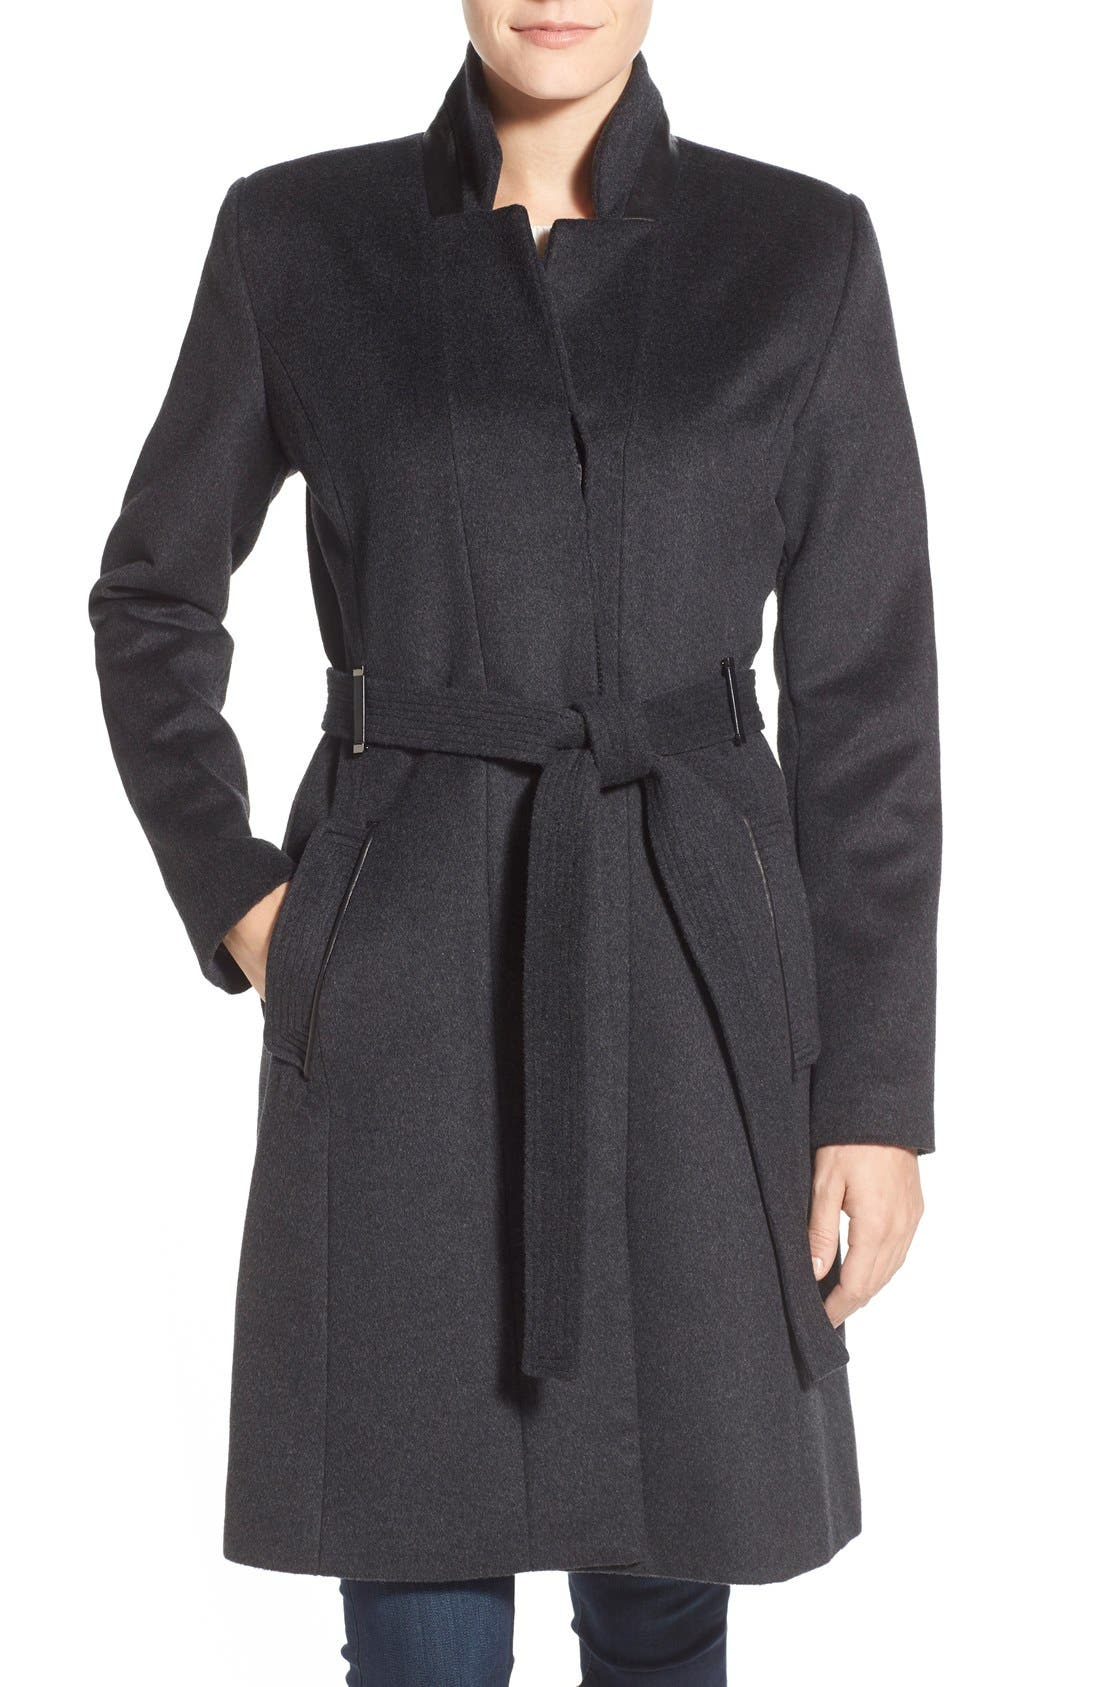 Badgley Mischka 'Ivana' Long Belted Inverted Collar Coat,                             Main thumbnail 1, color,                             020